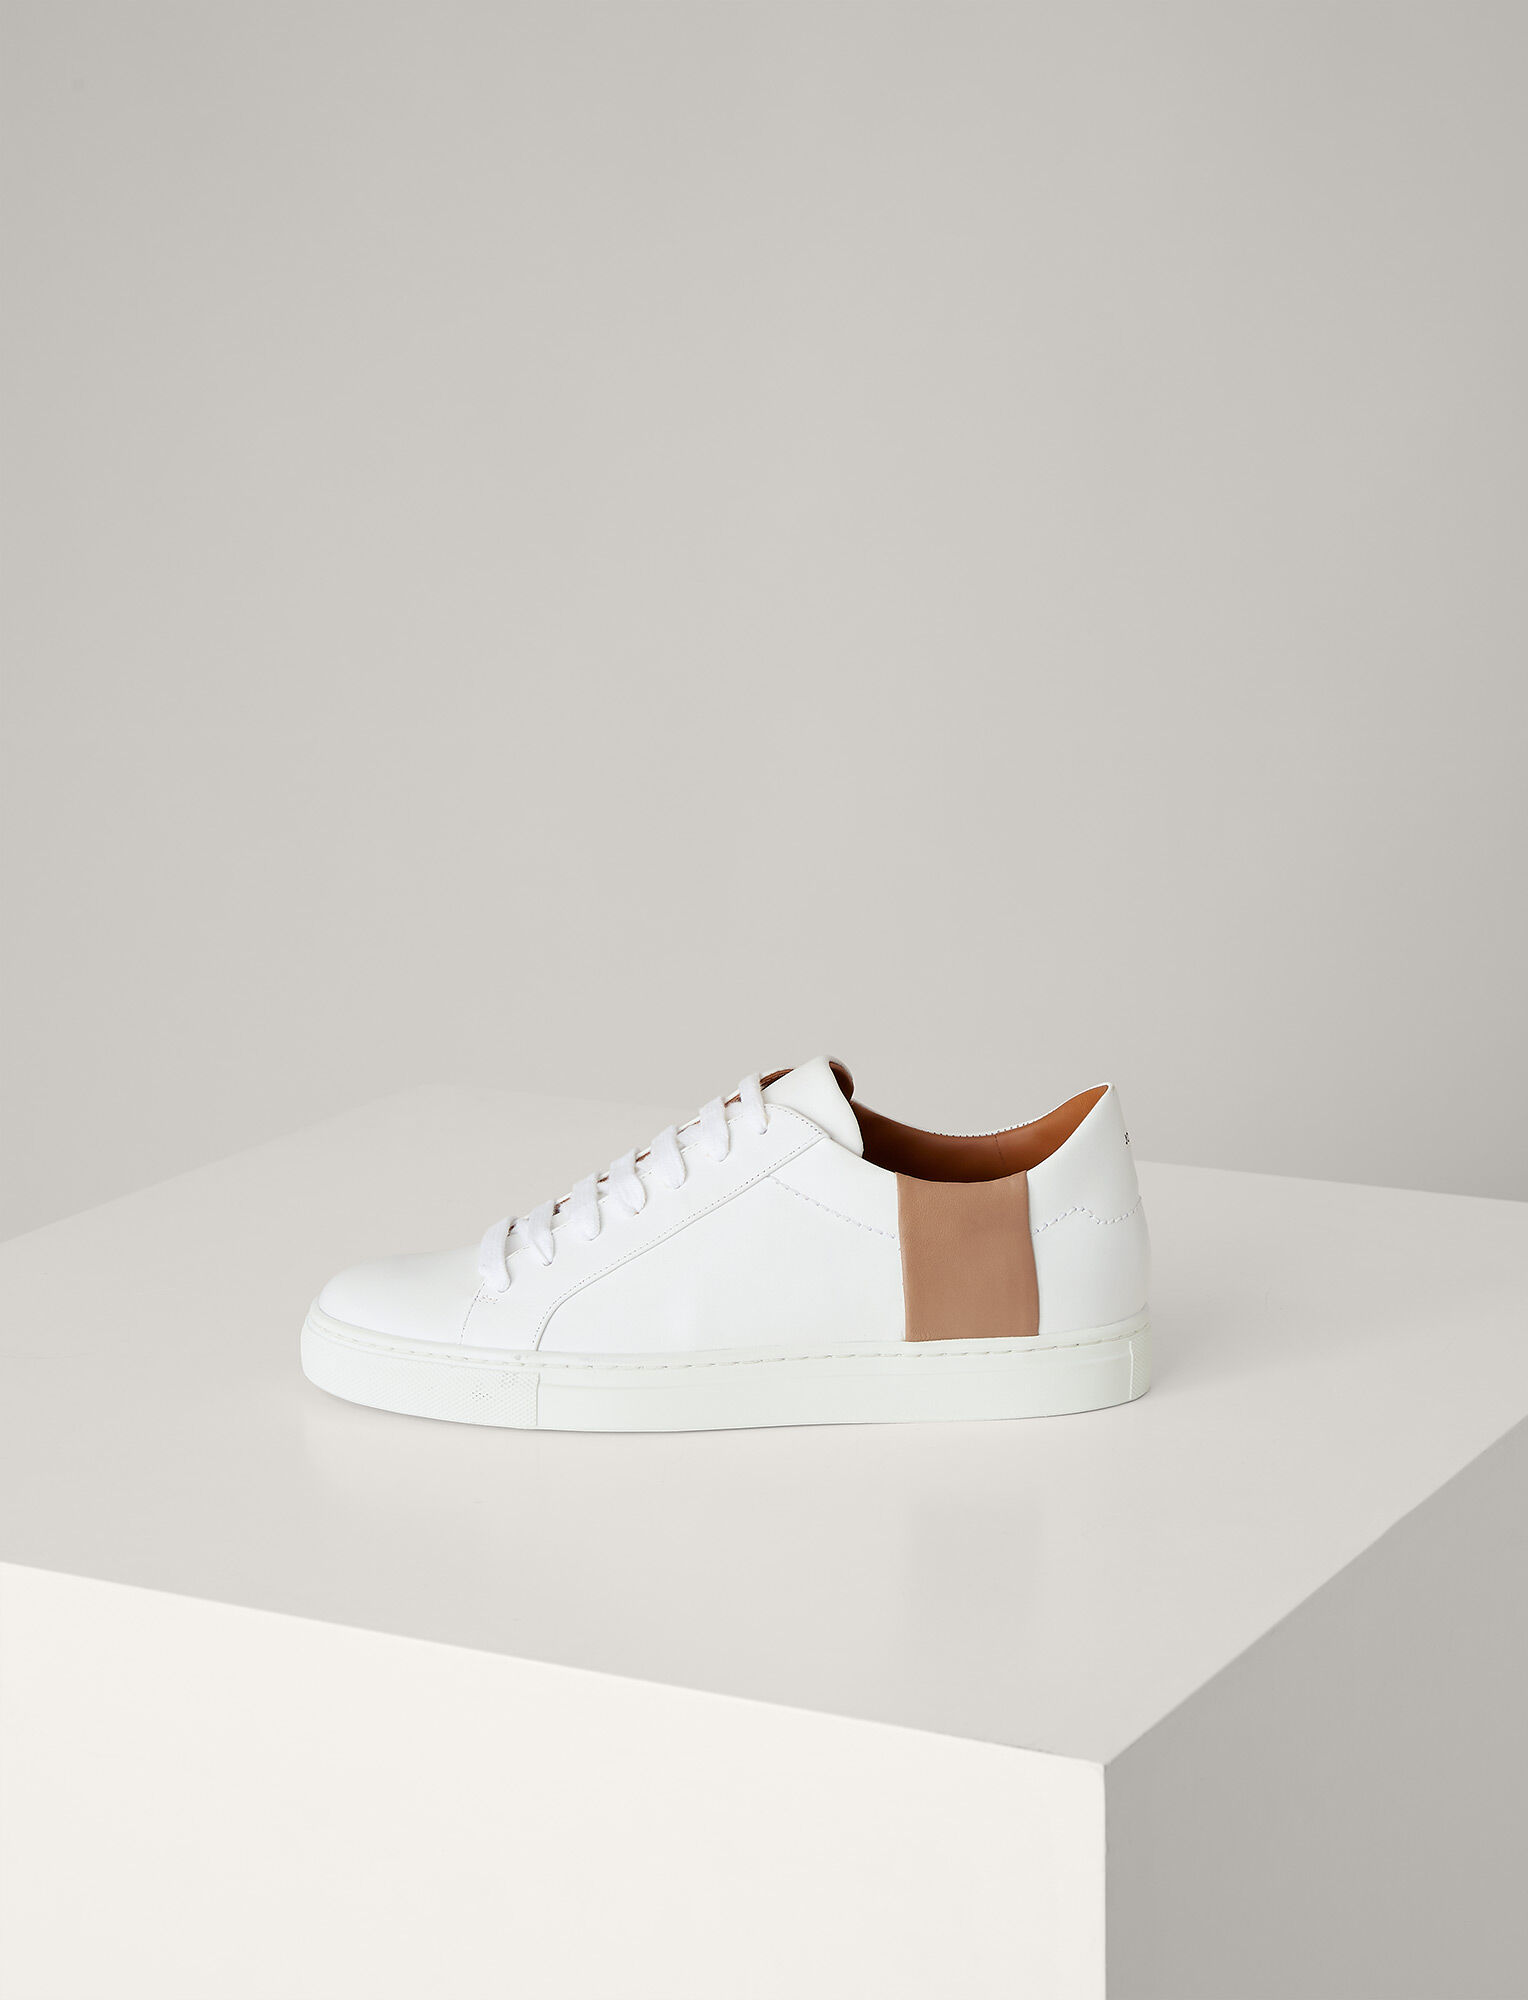 Joseph, Harry Leather Sneaker, in ECRU